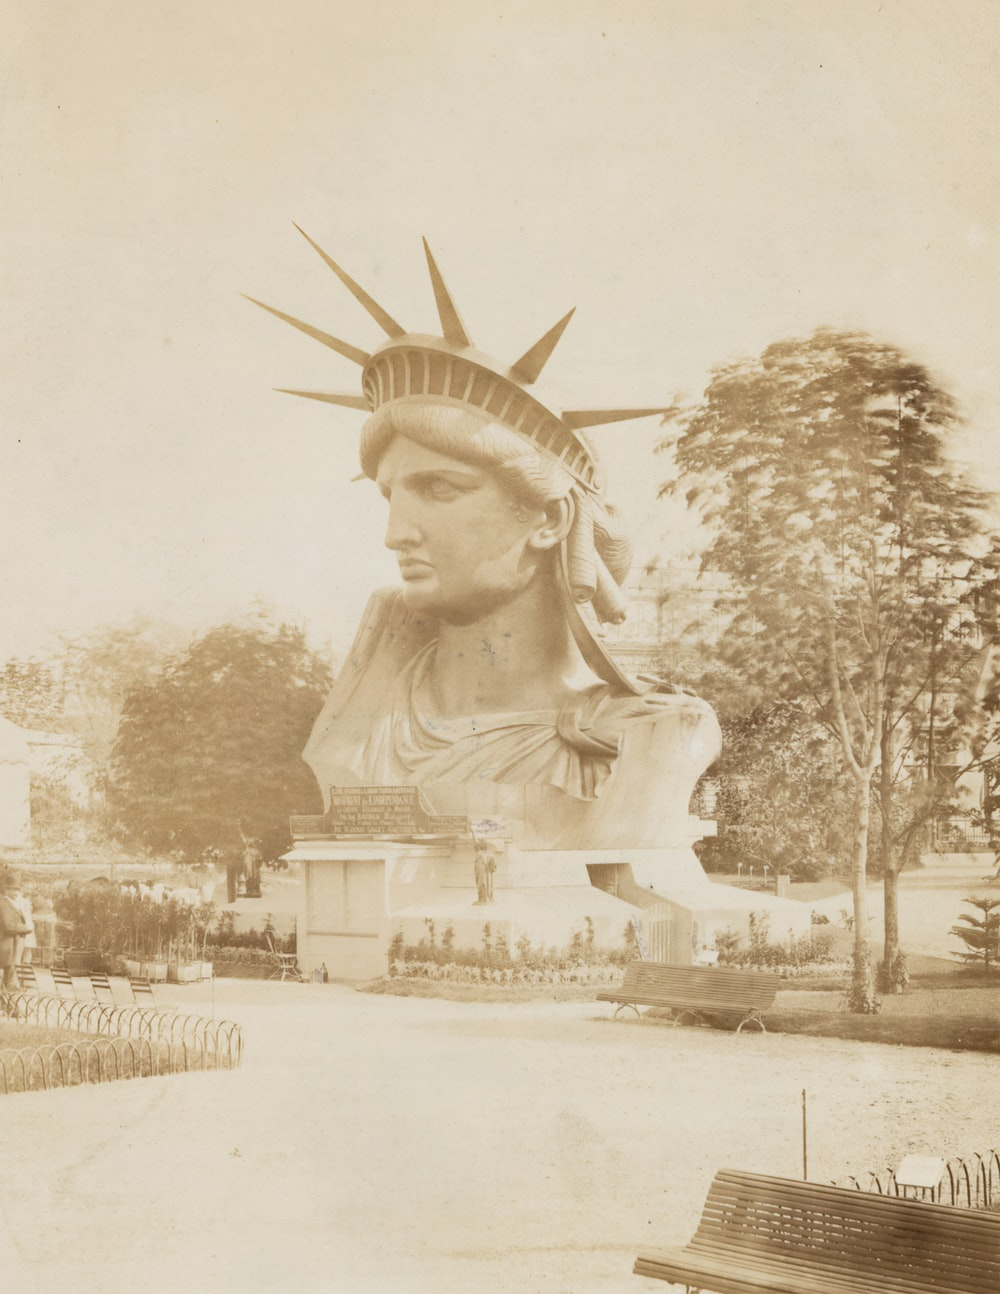 Historical image of the Statue of Liberty